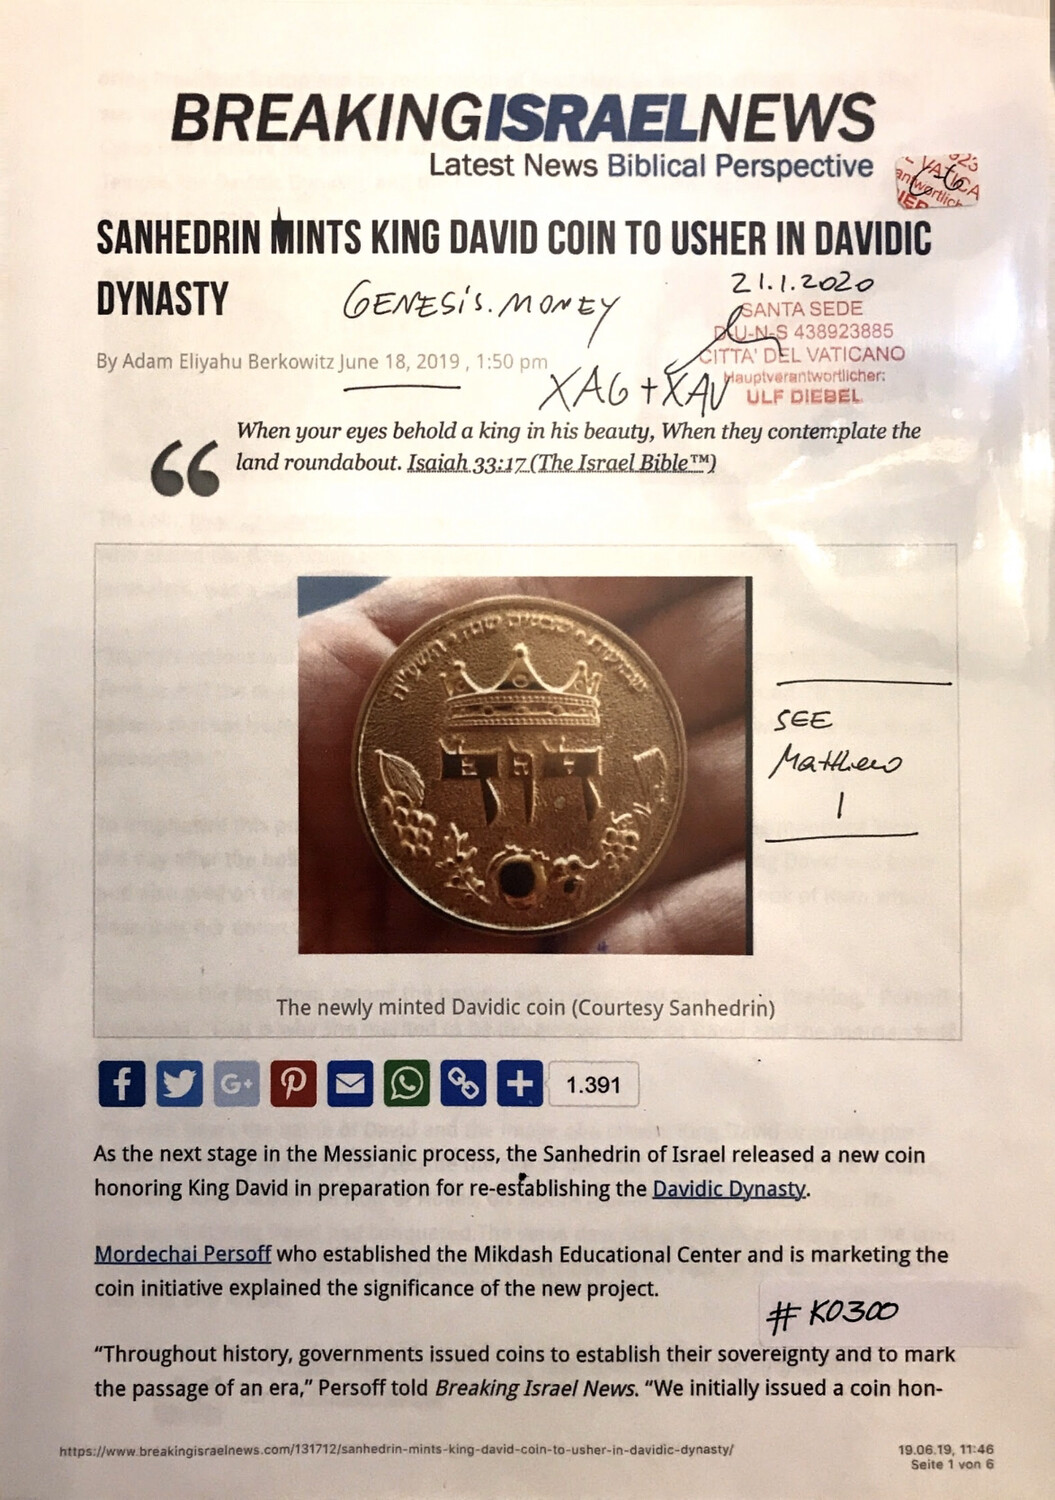 #K0300 l Breaking Israel News - Sanhedrin mints King David coin to usher in Davidic  Dynasty